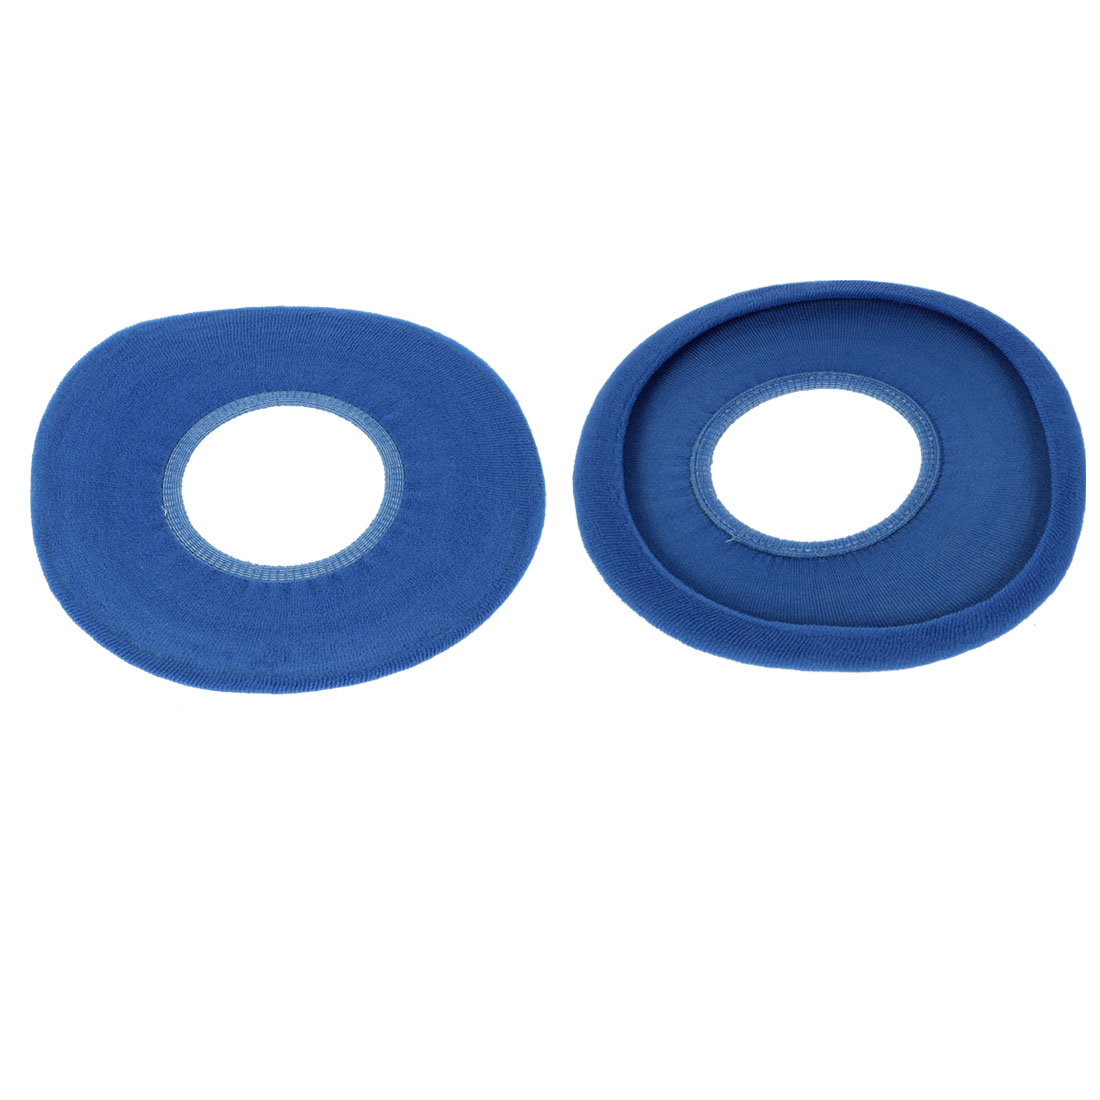 2Pcs Soft Bathroom Washable Toilet Seat Warmer Closestool Seats Blue